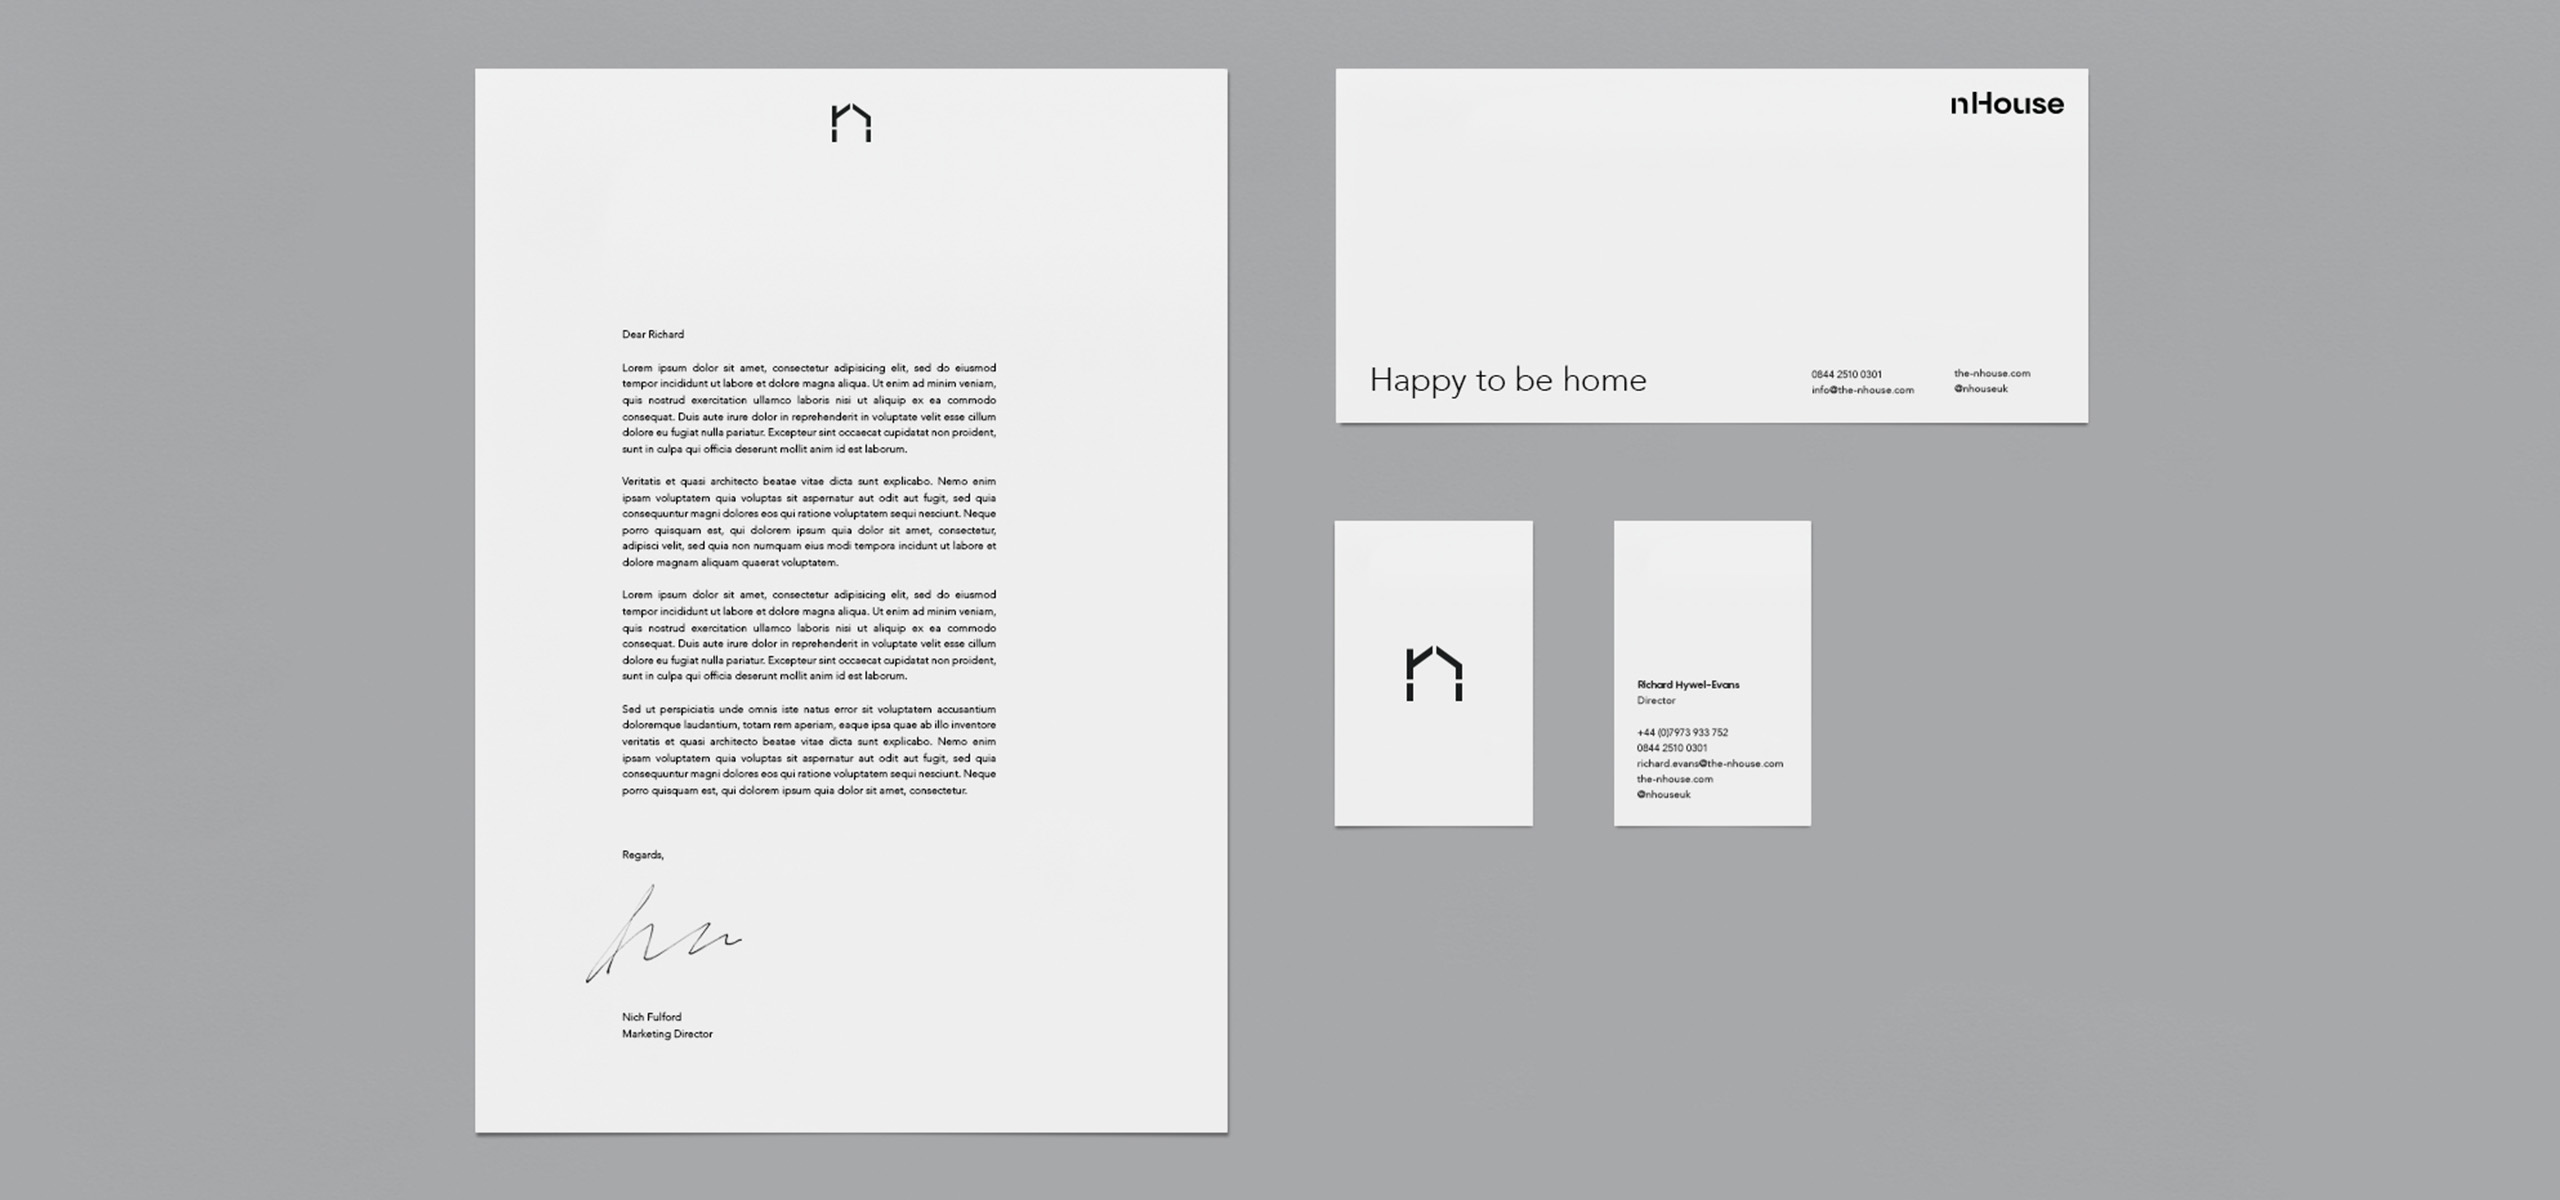 Stationery for architecture startup brand nHouse, designed by White Bear Studio